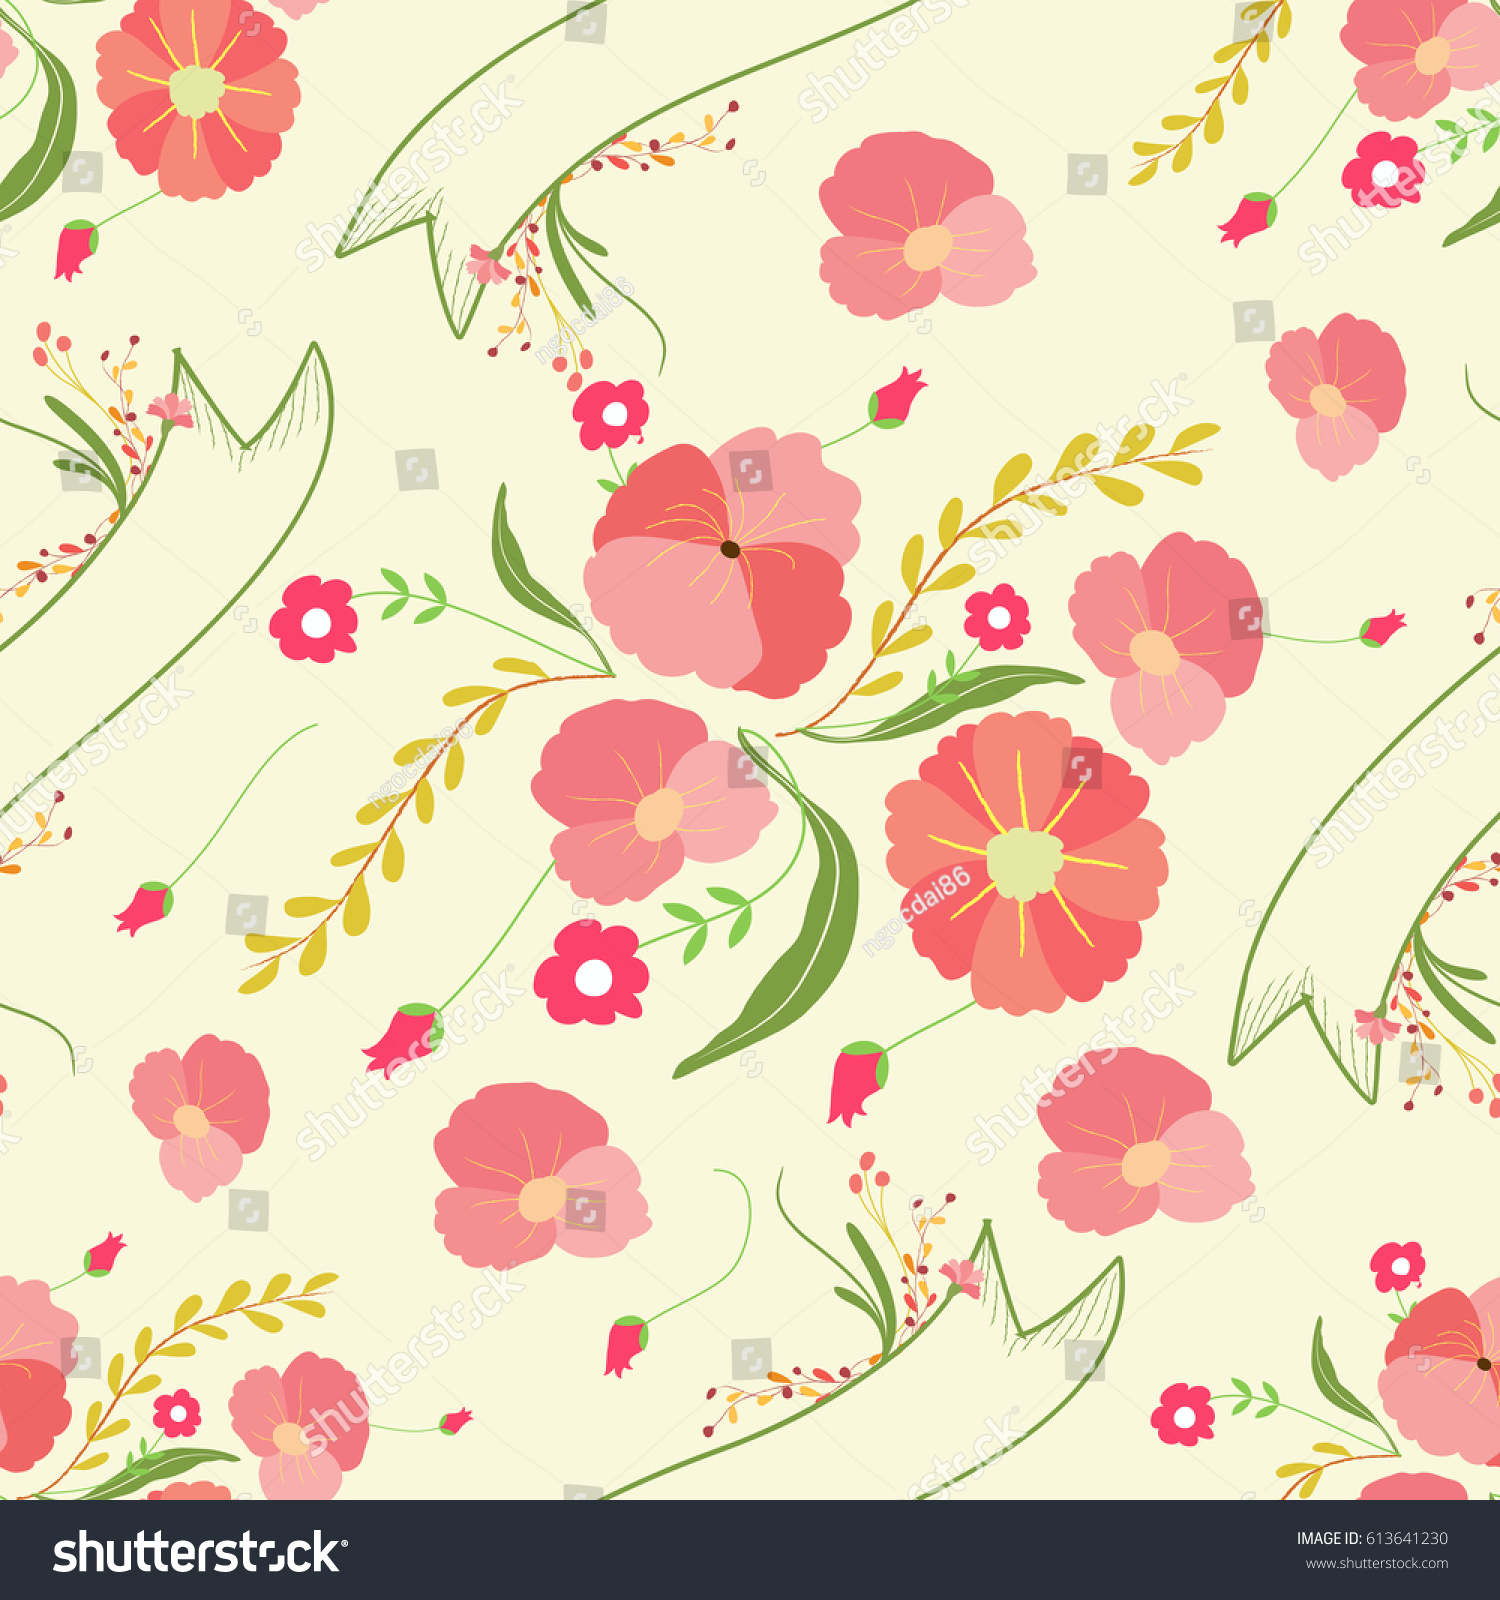 Spring Flowers Backgrounds Seamless Floral Pattern Ez Canvas